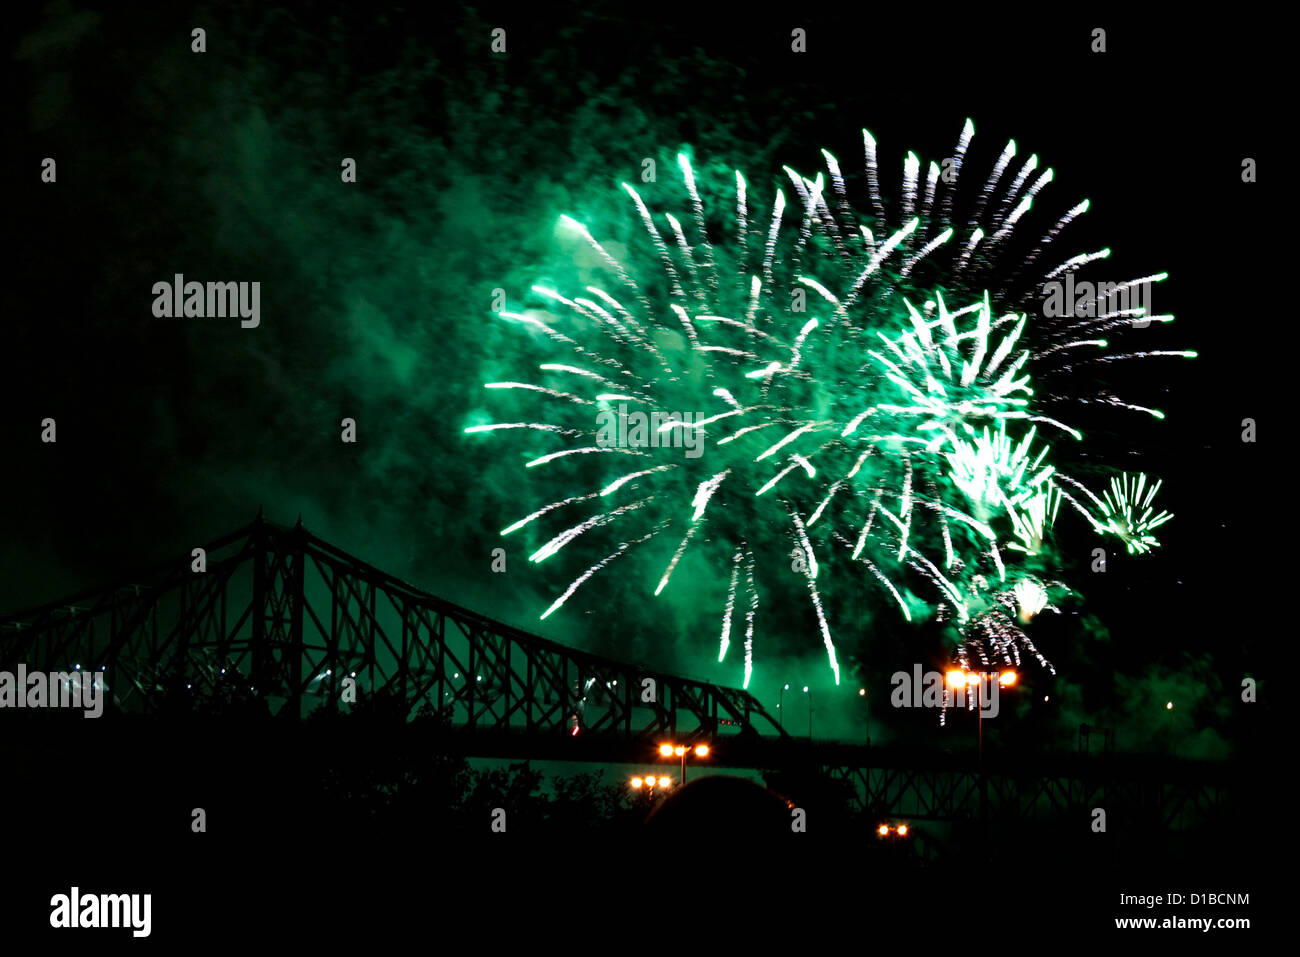 Green fireworks in the night sky near a metal bridge Stock Photo